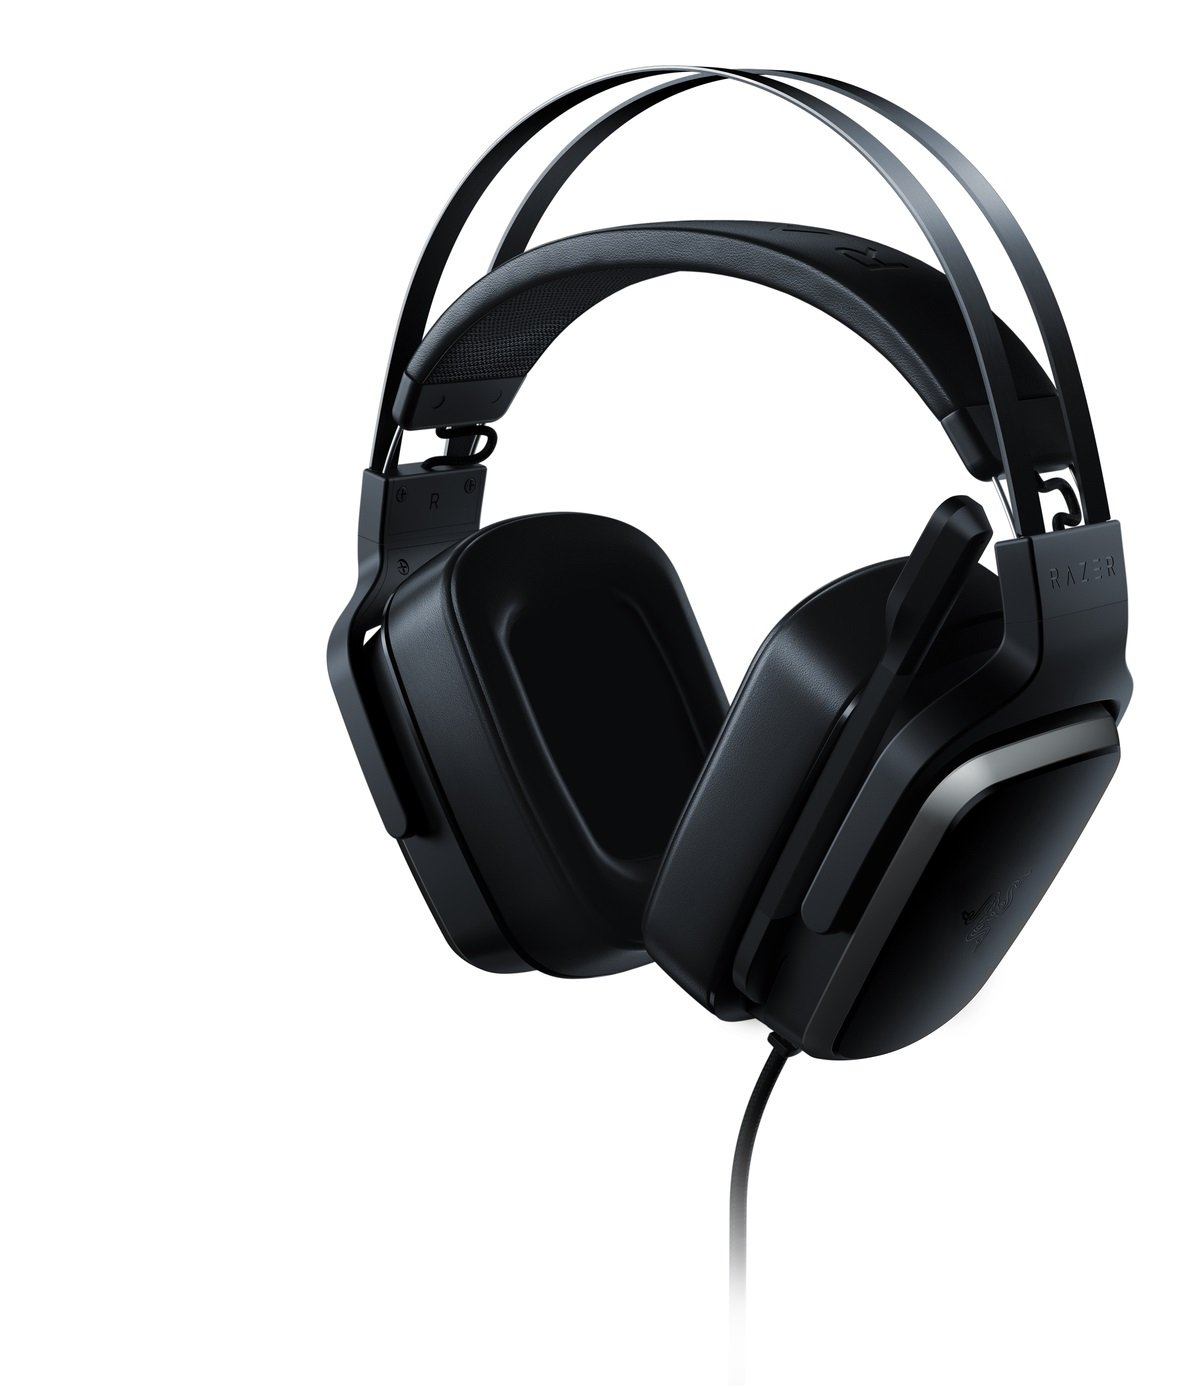 Razer Tiamat 7.1 V2 - Analog/Digital Surround Sound Gaming Headset by Razer